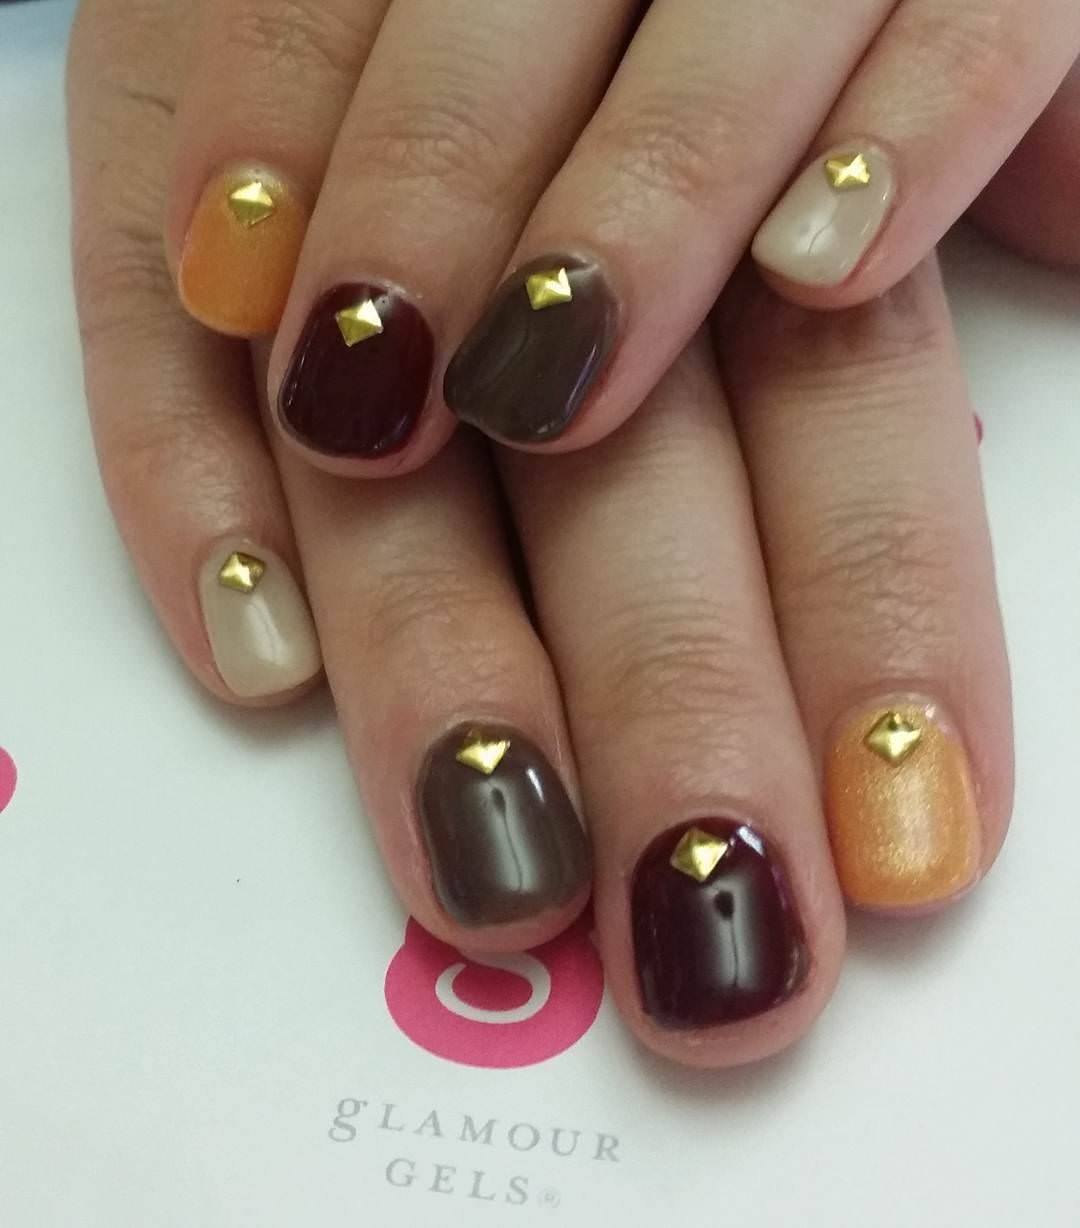 Awesome Tan Nail Design